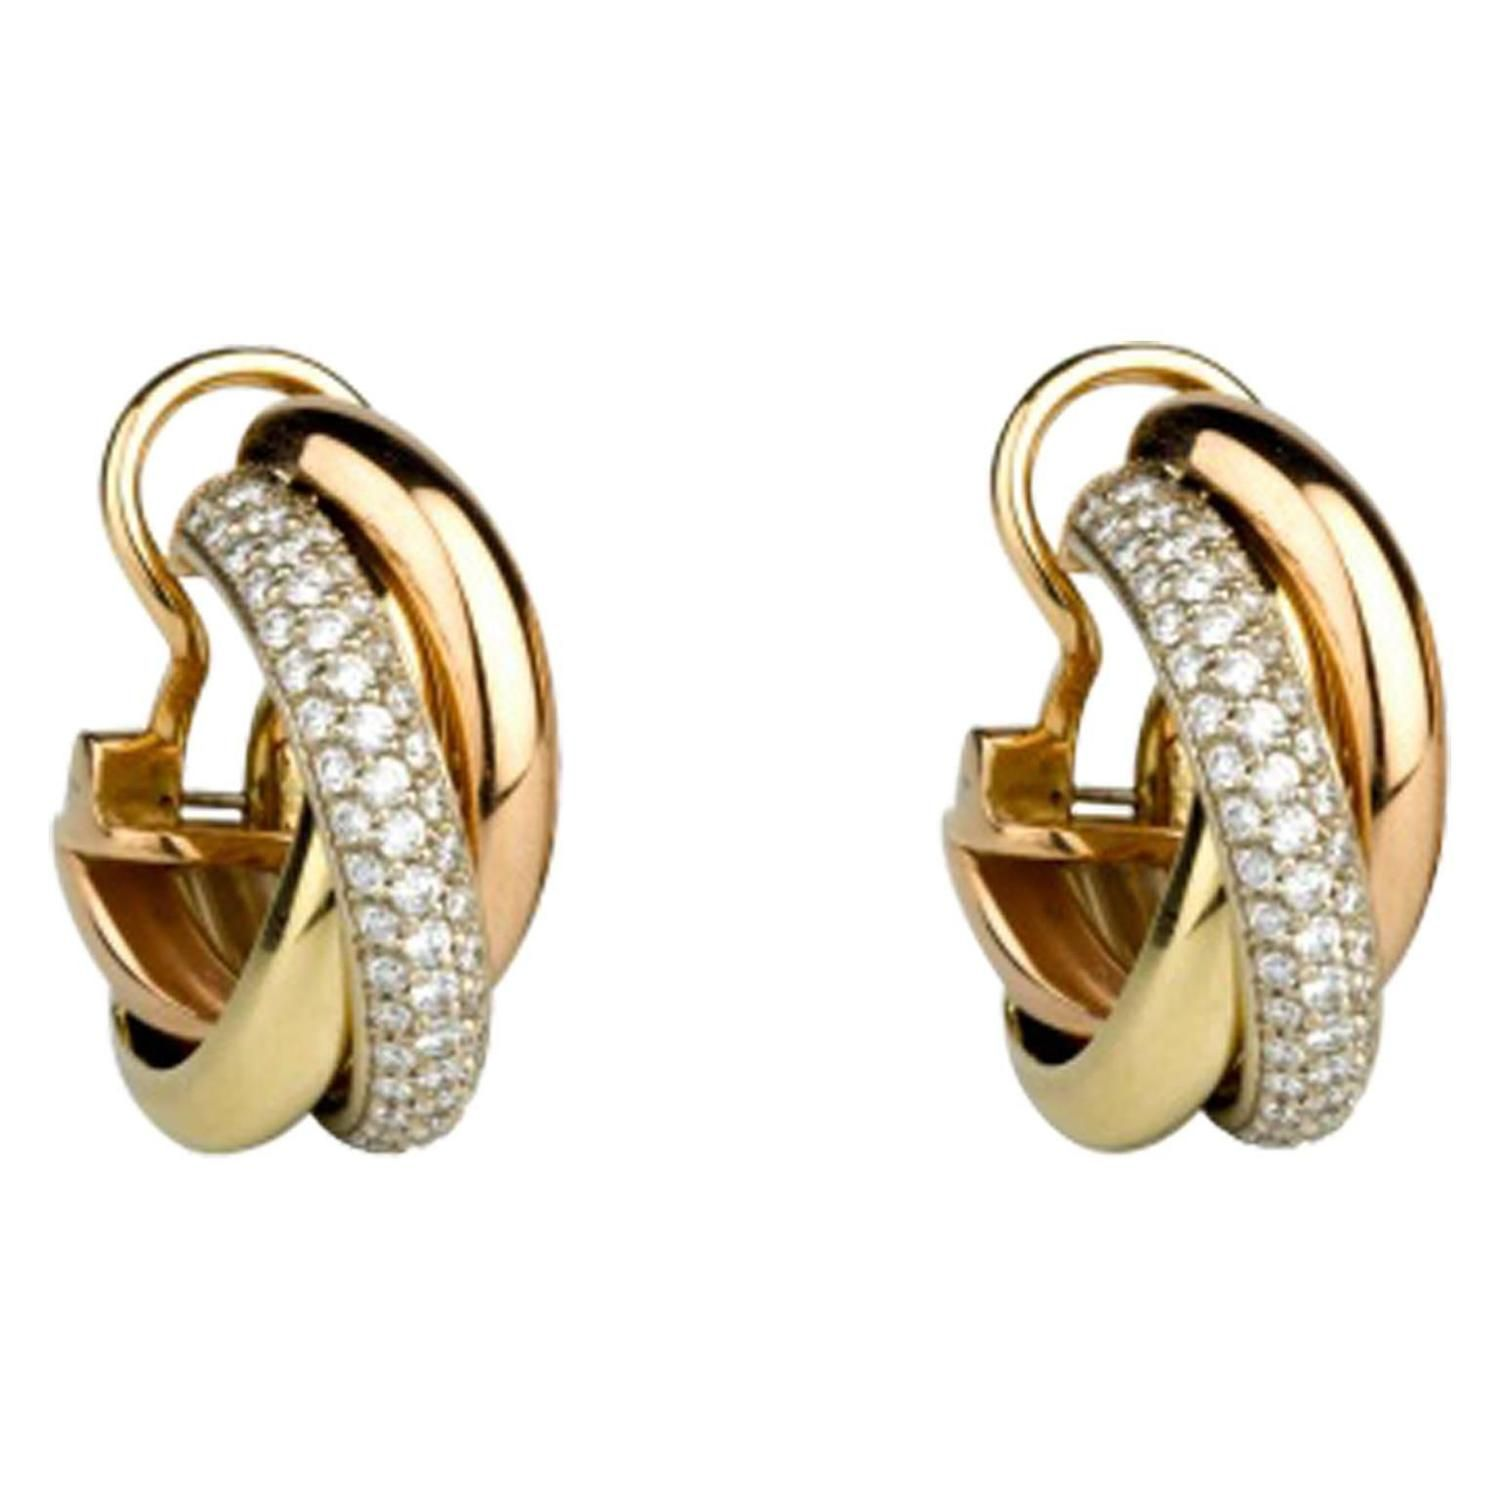 trinity de hoop the earrings enlarged products realreal jewelry cartier